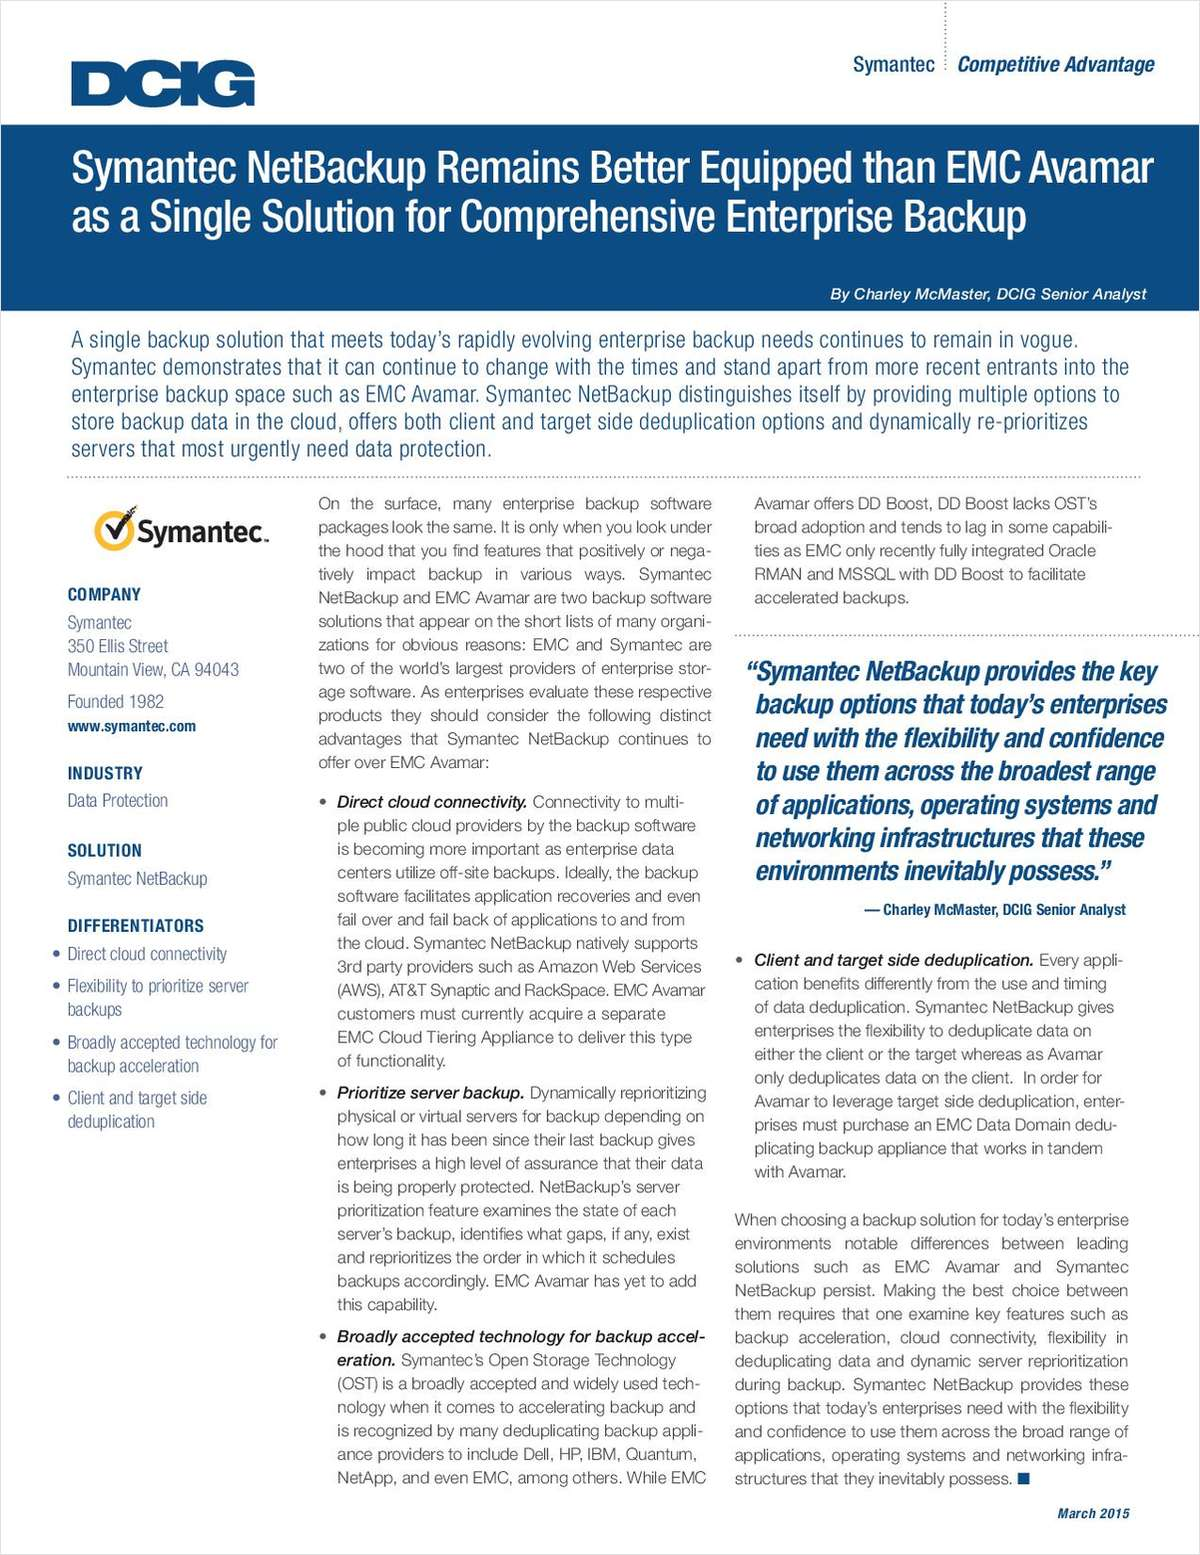 Symantec NetBackup Remains Better Equipped than EMC Avamar as a Single Solution for Comprehensive Enterprise Backup